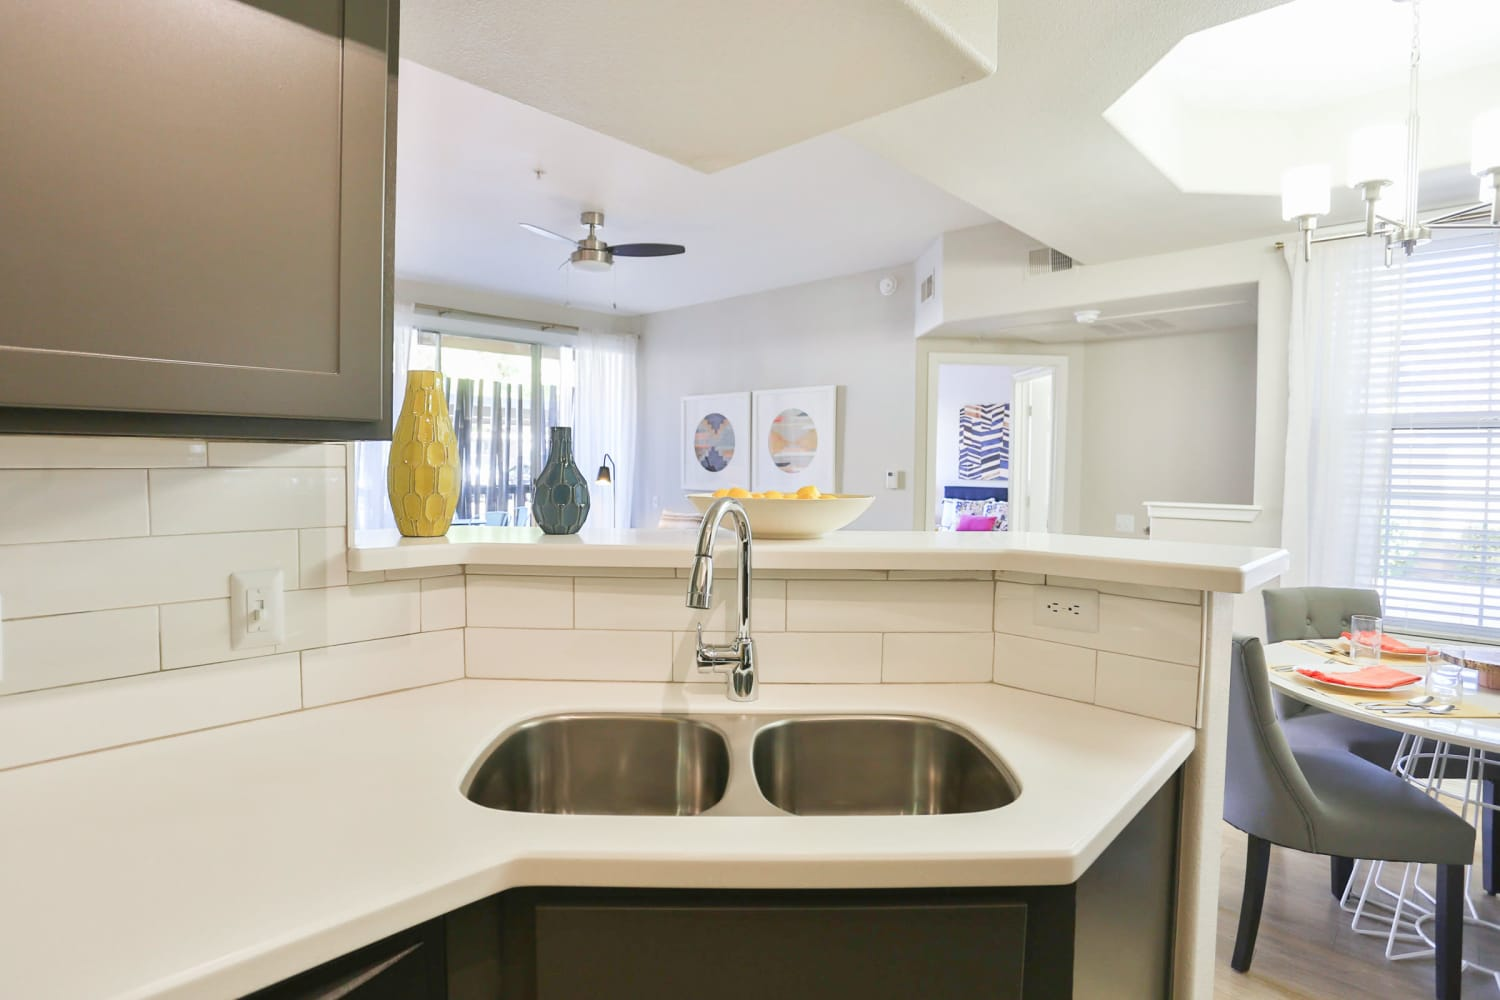 Sonoran Vista Apartments in Scottsdale, Arizona, offer kitchens with plenty of counter space